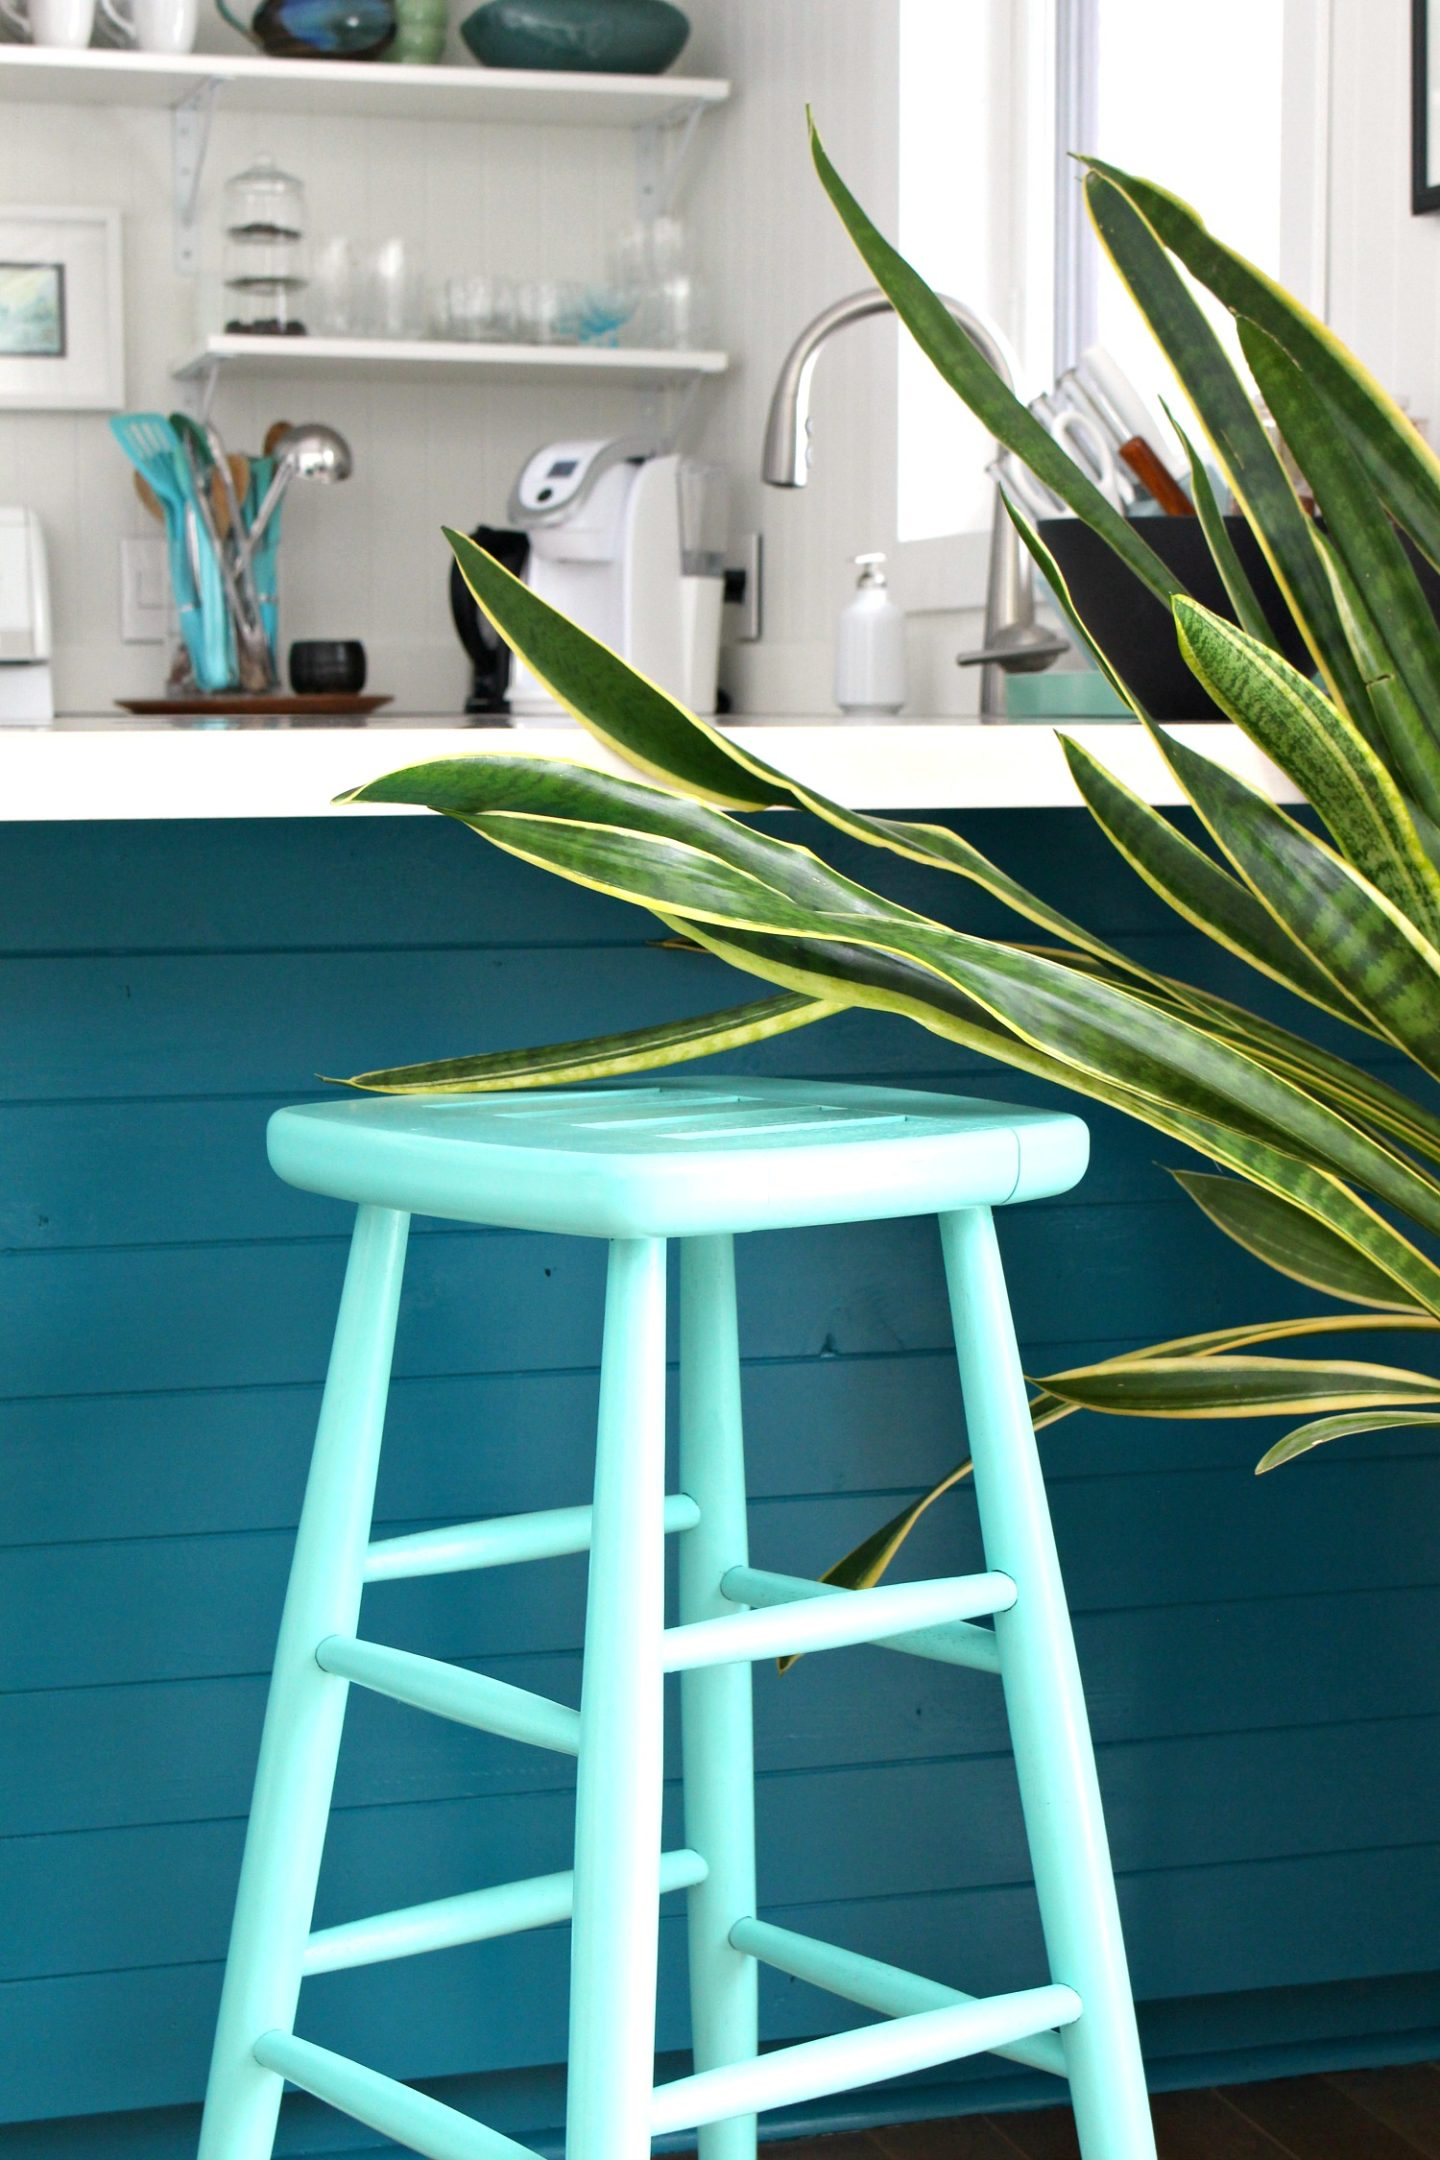 Turquoise Lacquer Stool Makeover   Rust-Oleum Speciality Lacquer Turquoise Review #lacquerpaint #furnituremakeover #upcycle #spraypaint #rustoleum